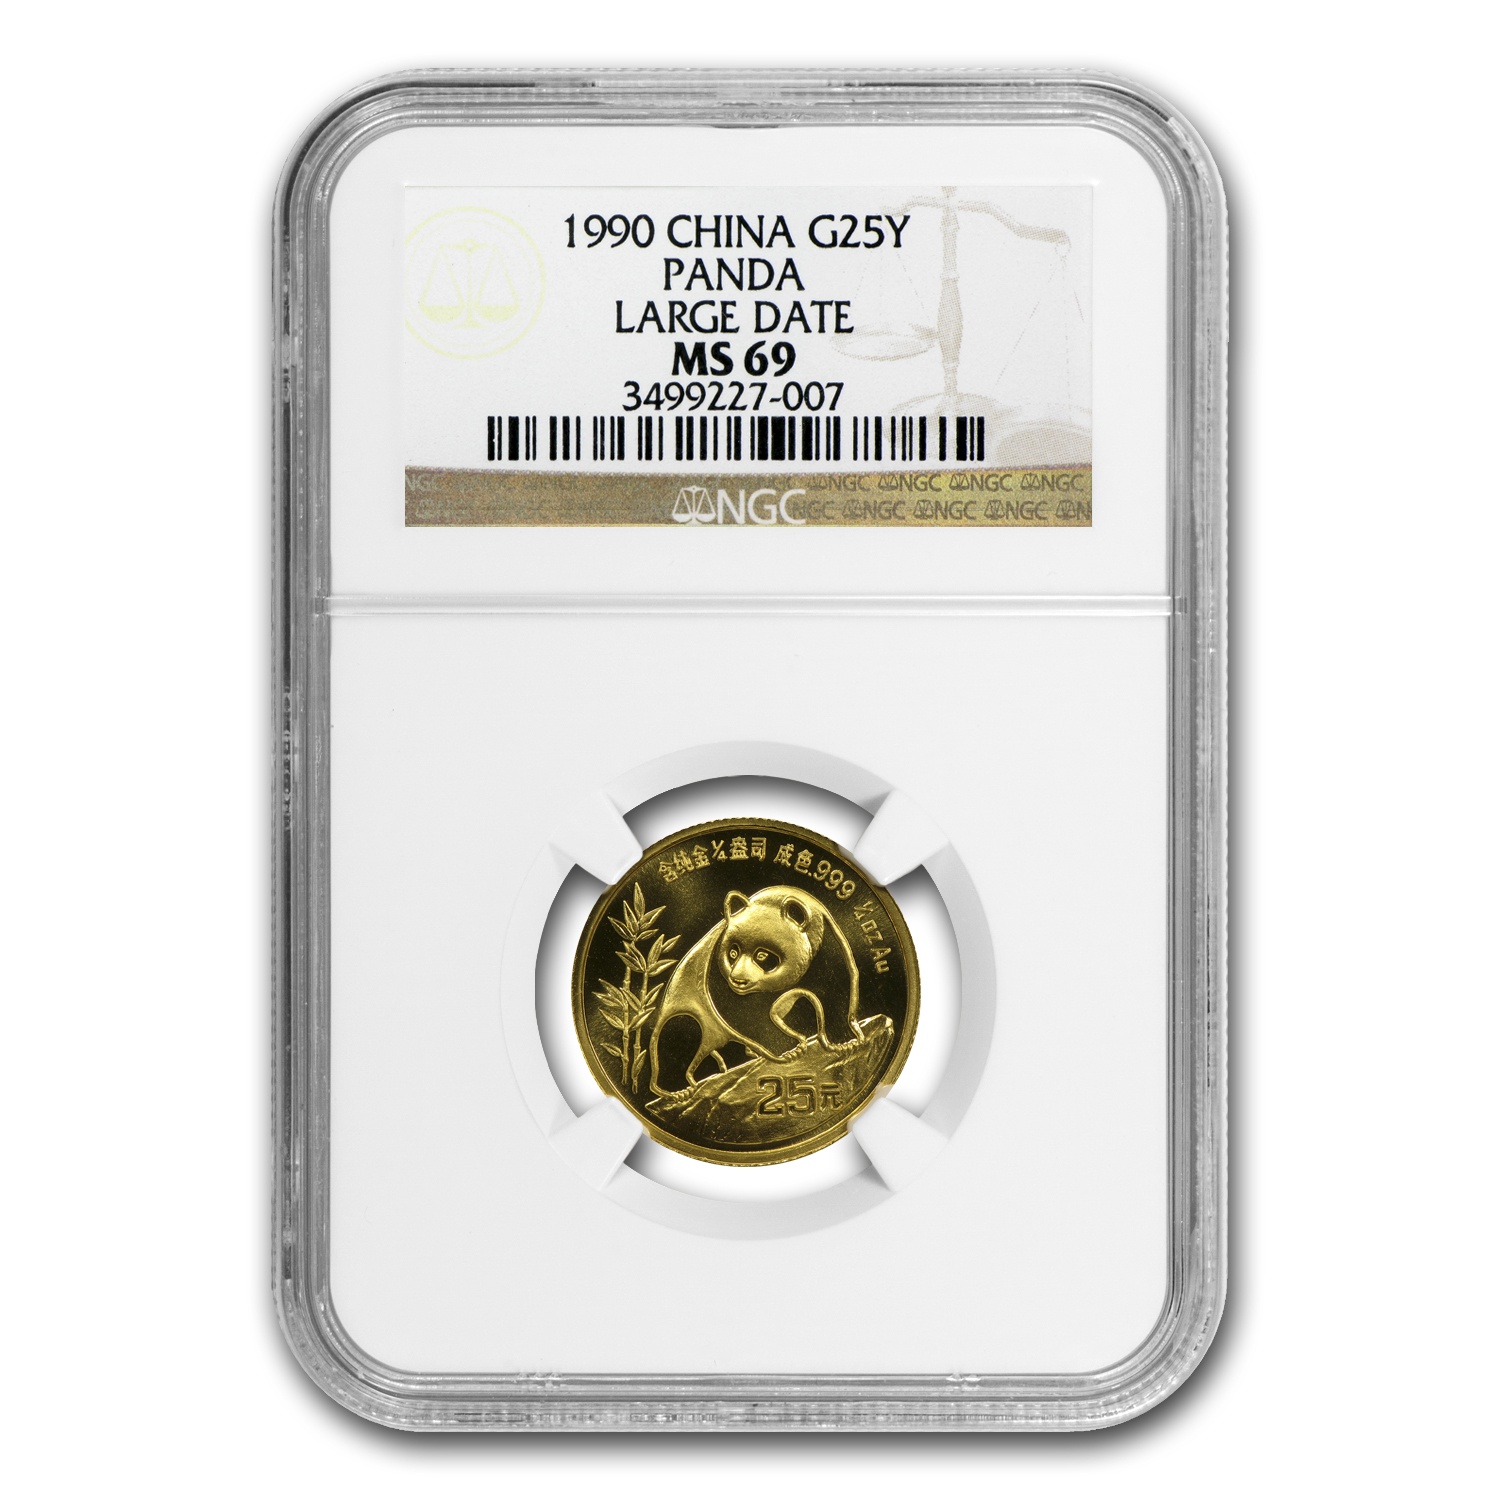 1990 (1/4 oz) Gold Chinese Pandas - Large Date MS-69 NGC